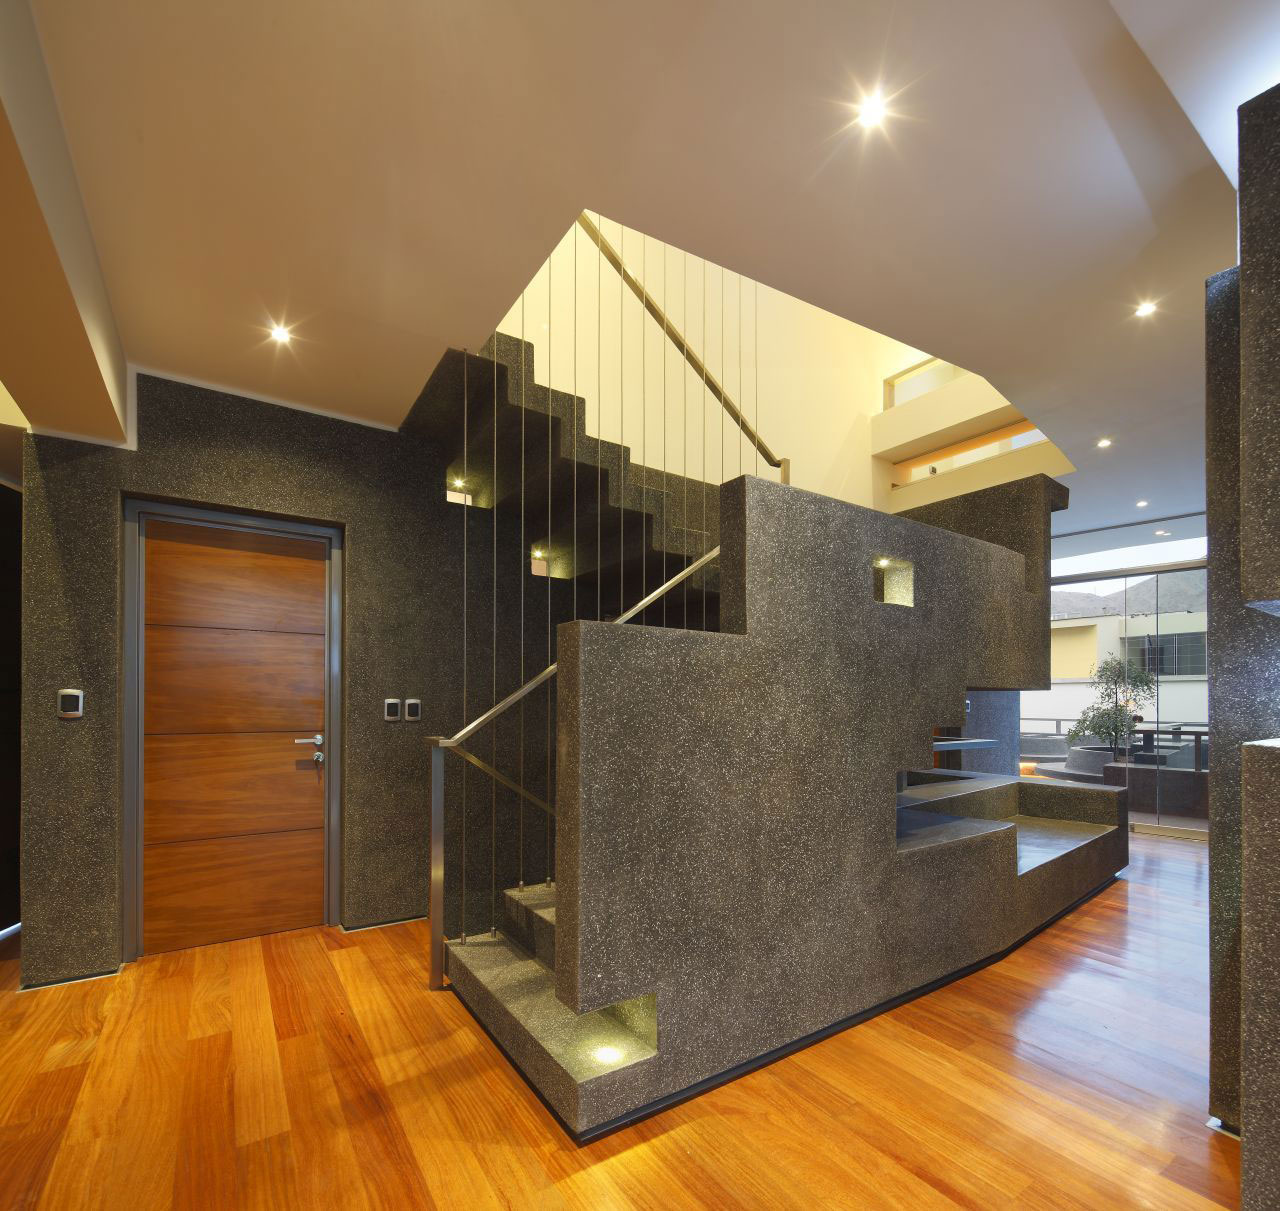 Stairs, Home in La Planicie, Lima